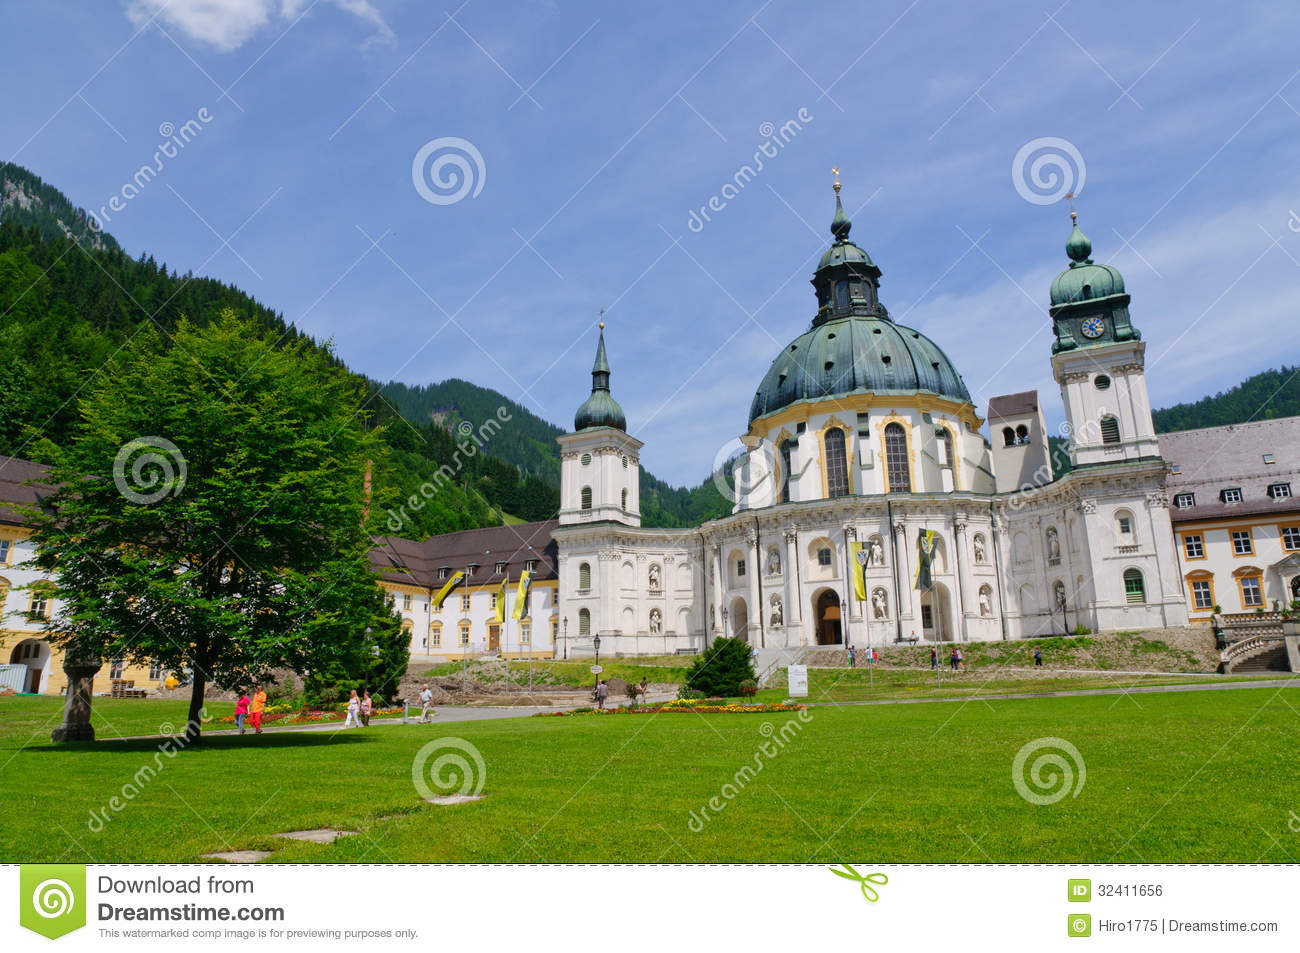 Ettal Germany  city images : Ettal Abbey In Upper Bavaria, Germany Royalty Free Stock Image Image ...